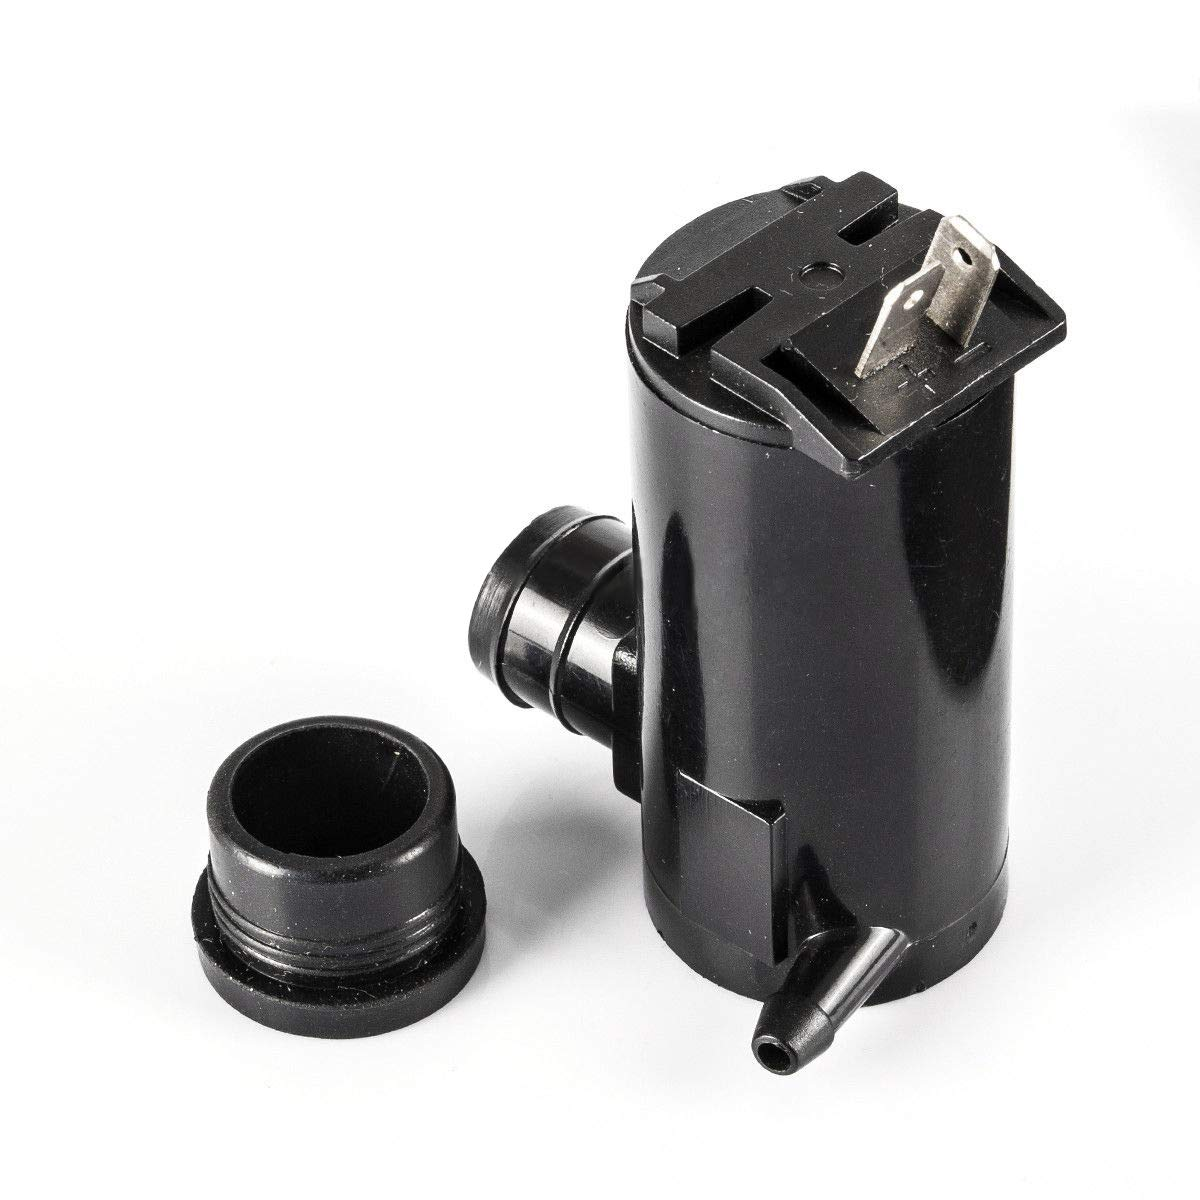 CNSY Front Windshield Washer Pump Fits for Acura Integra Legend NSX RL TL Honda 38512-SC4-673